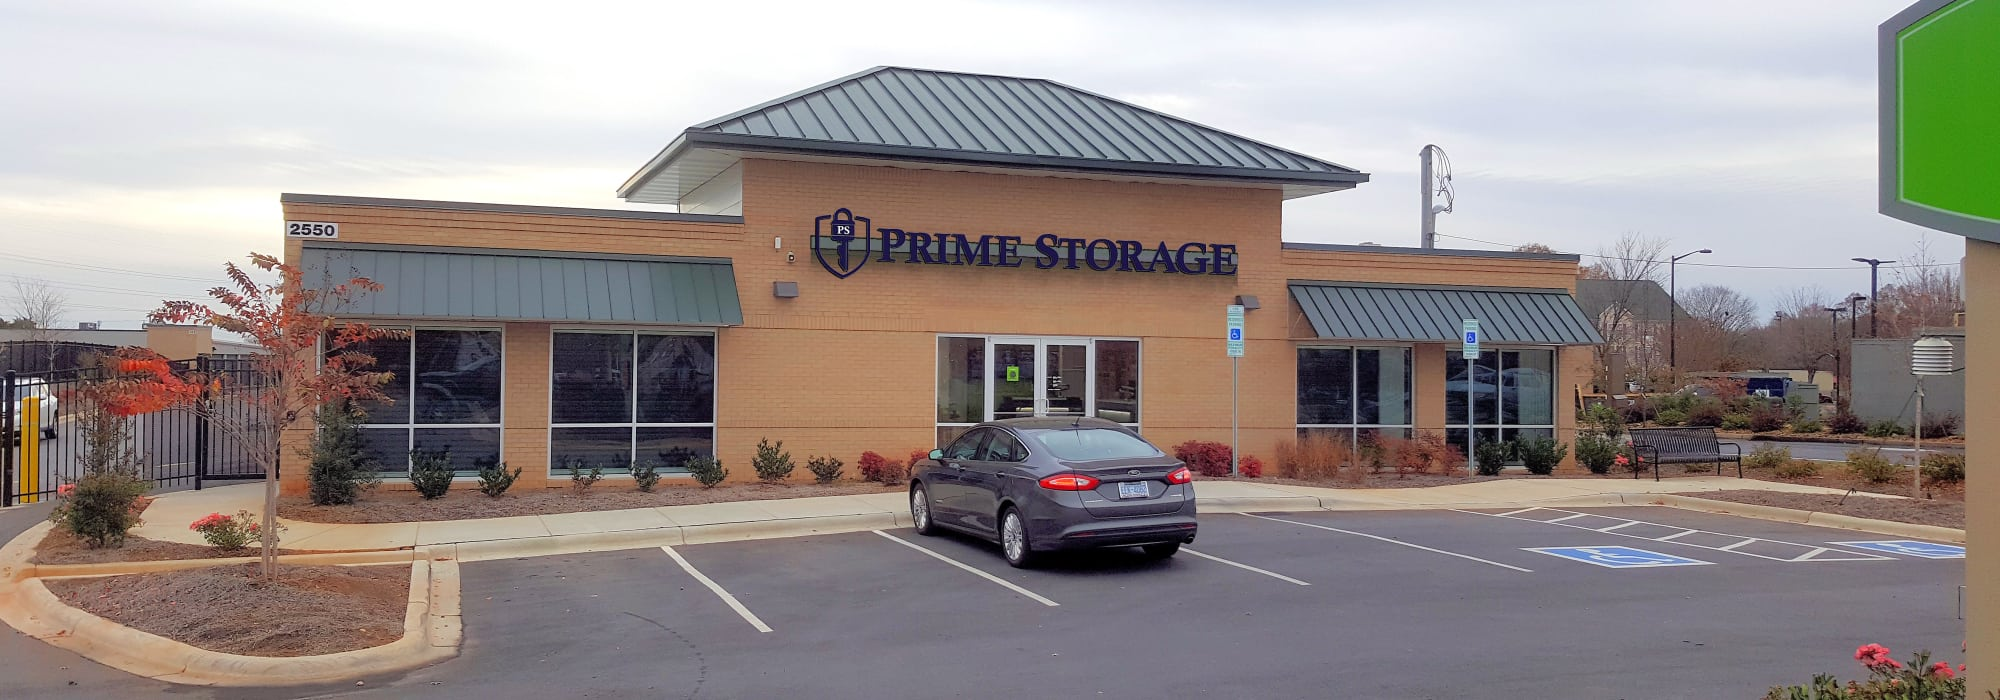 Prime Storage in Rock Hill, SC